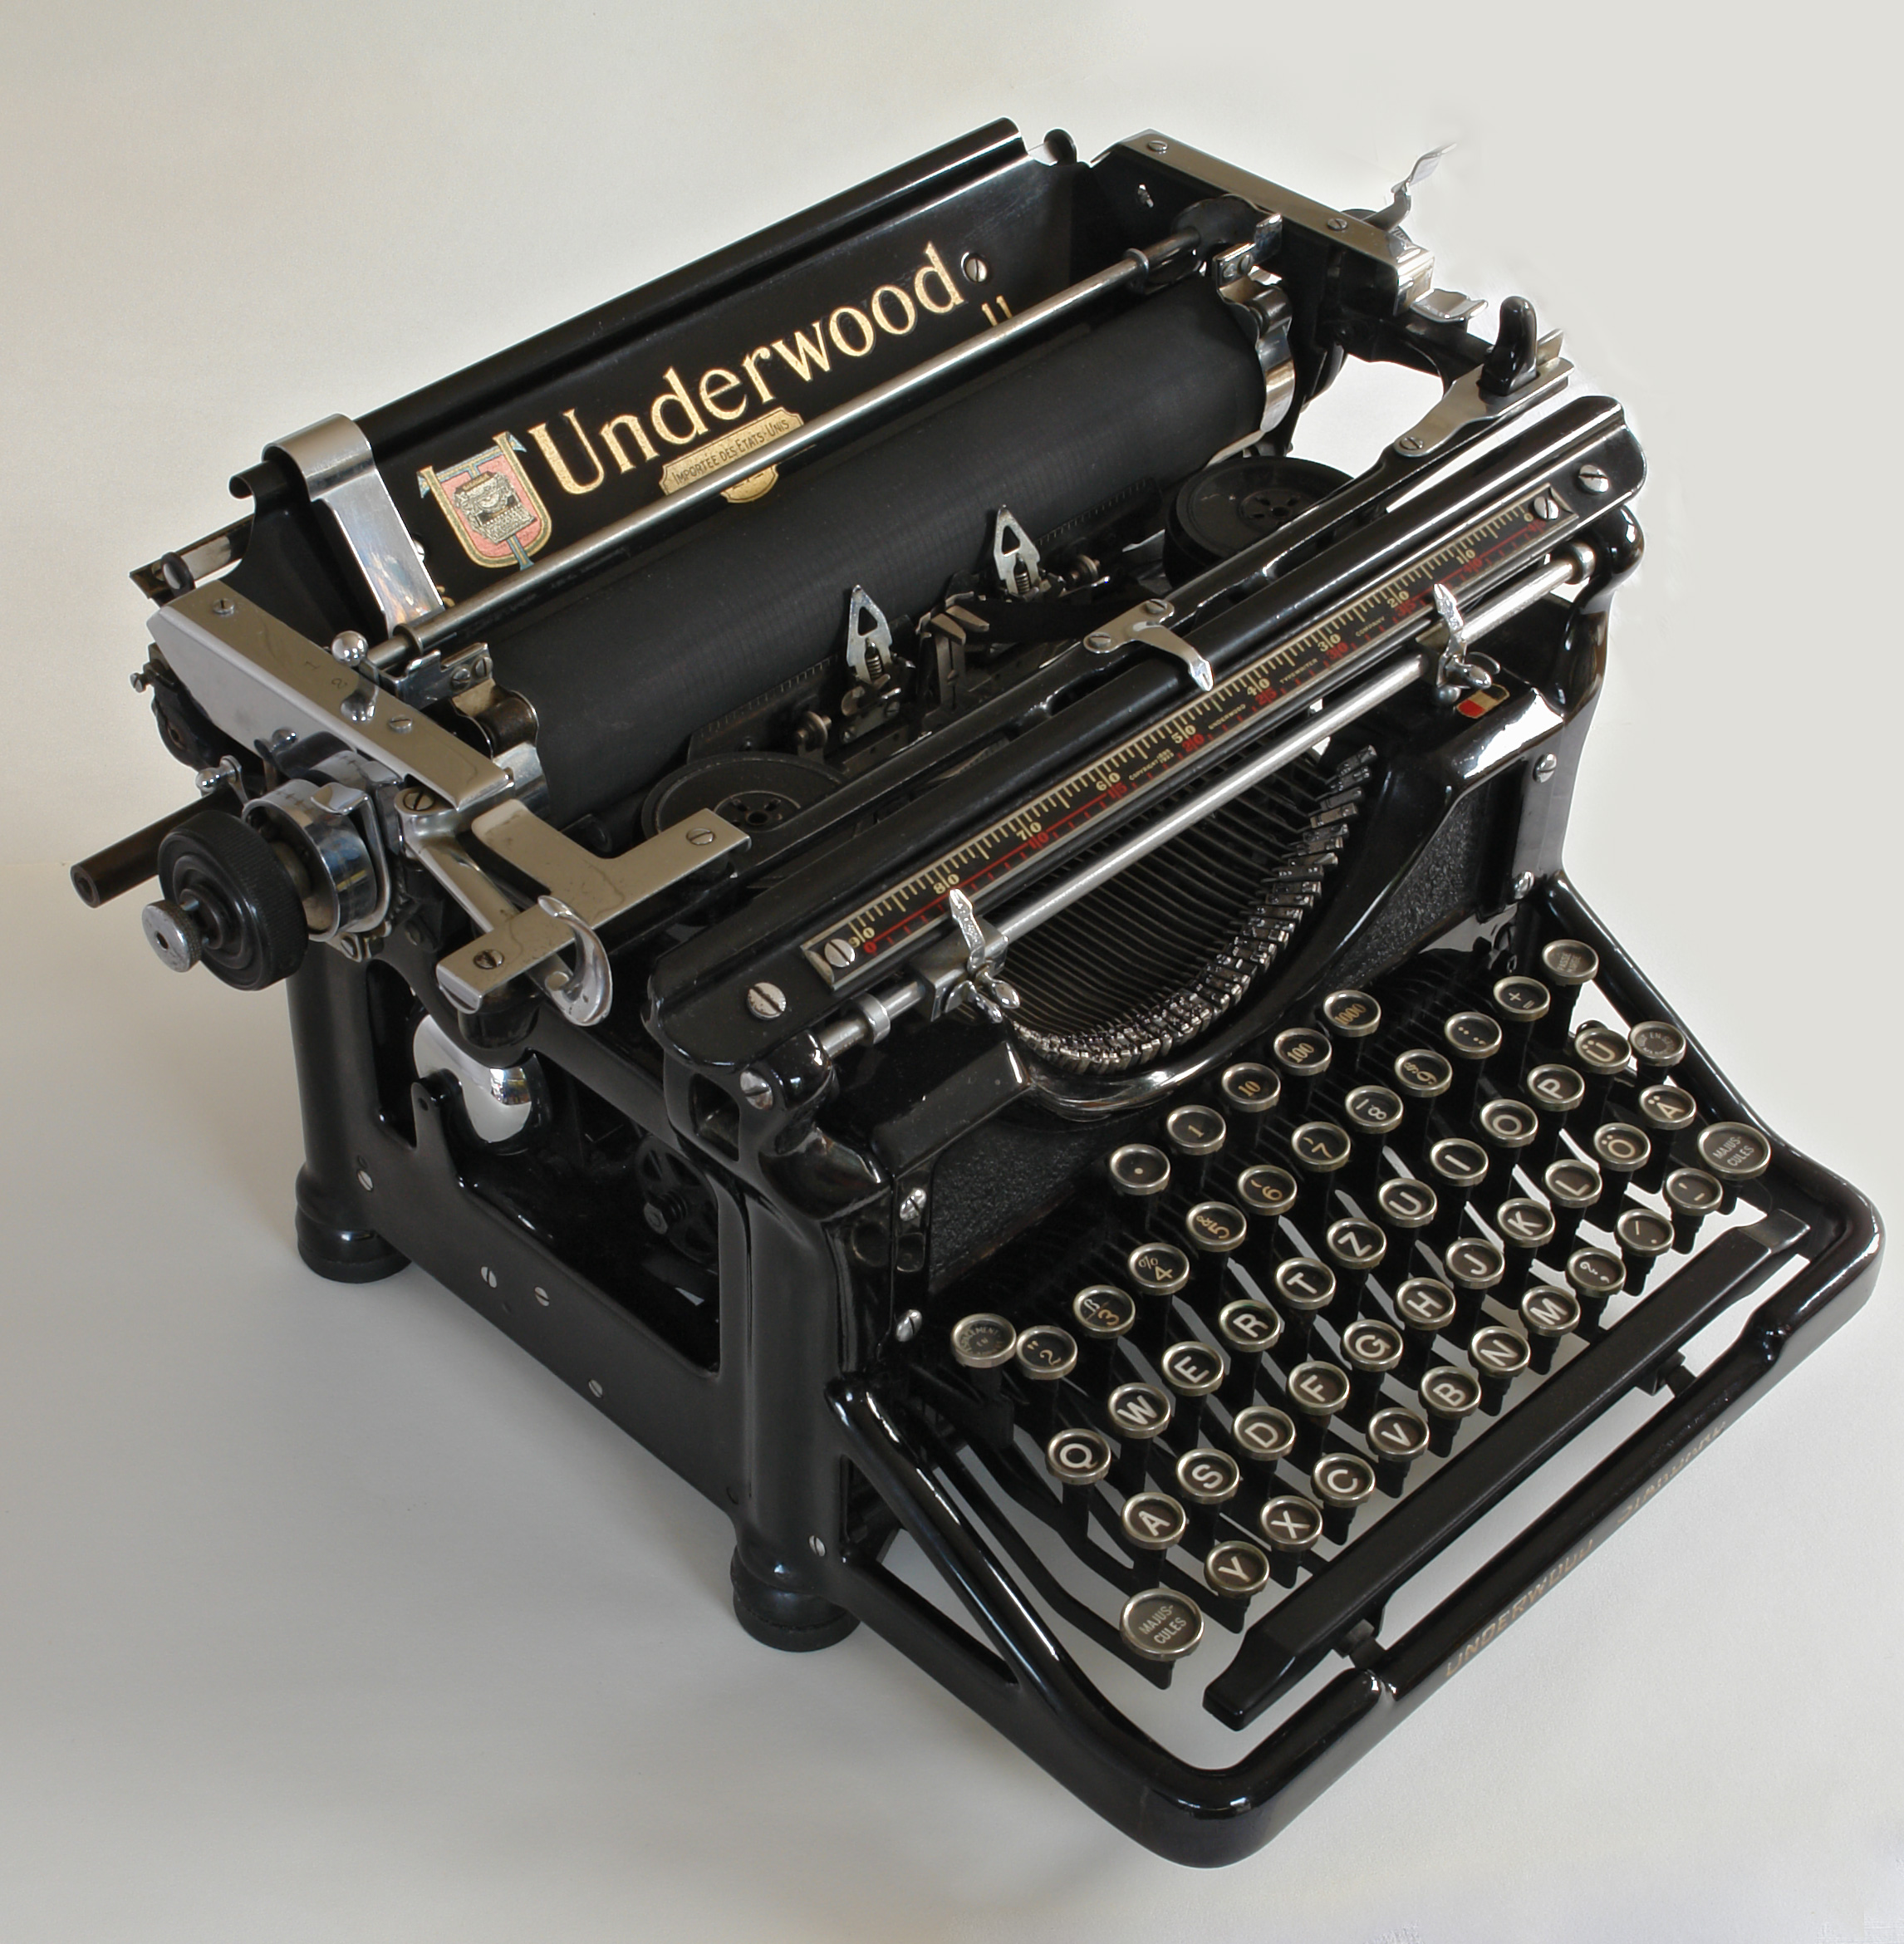 Underwood-overview